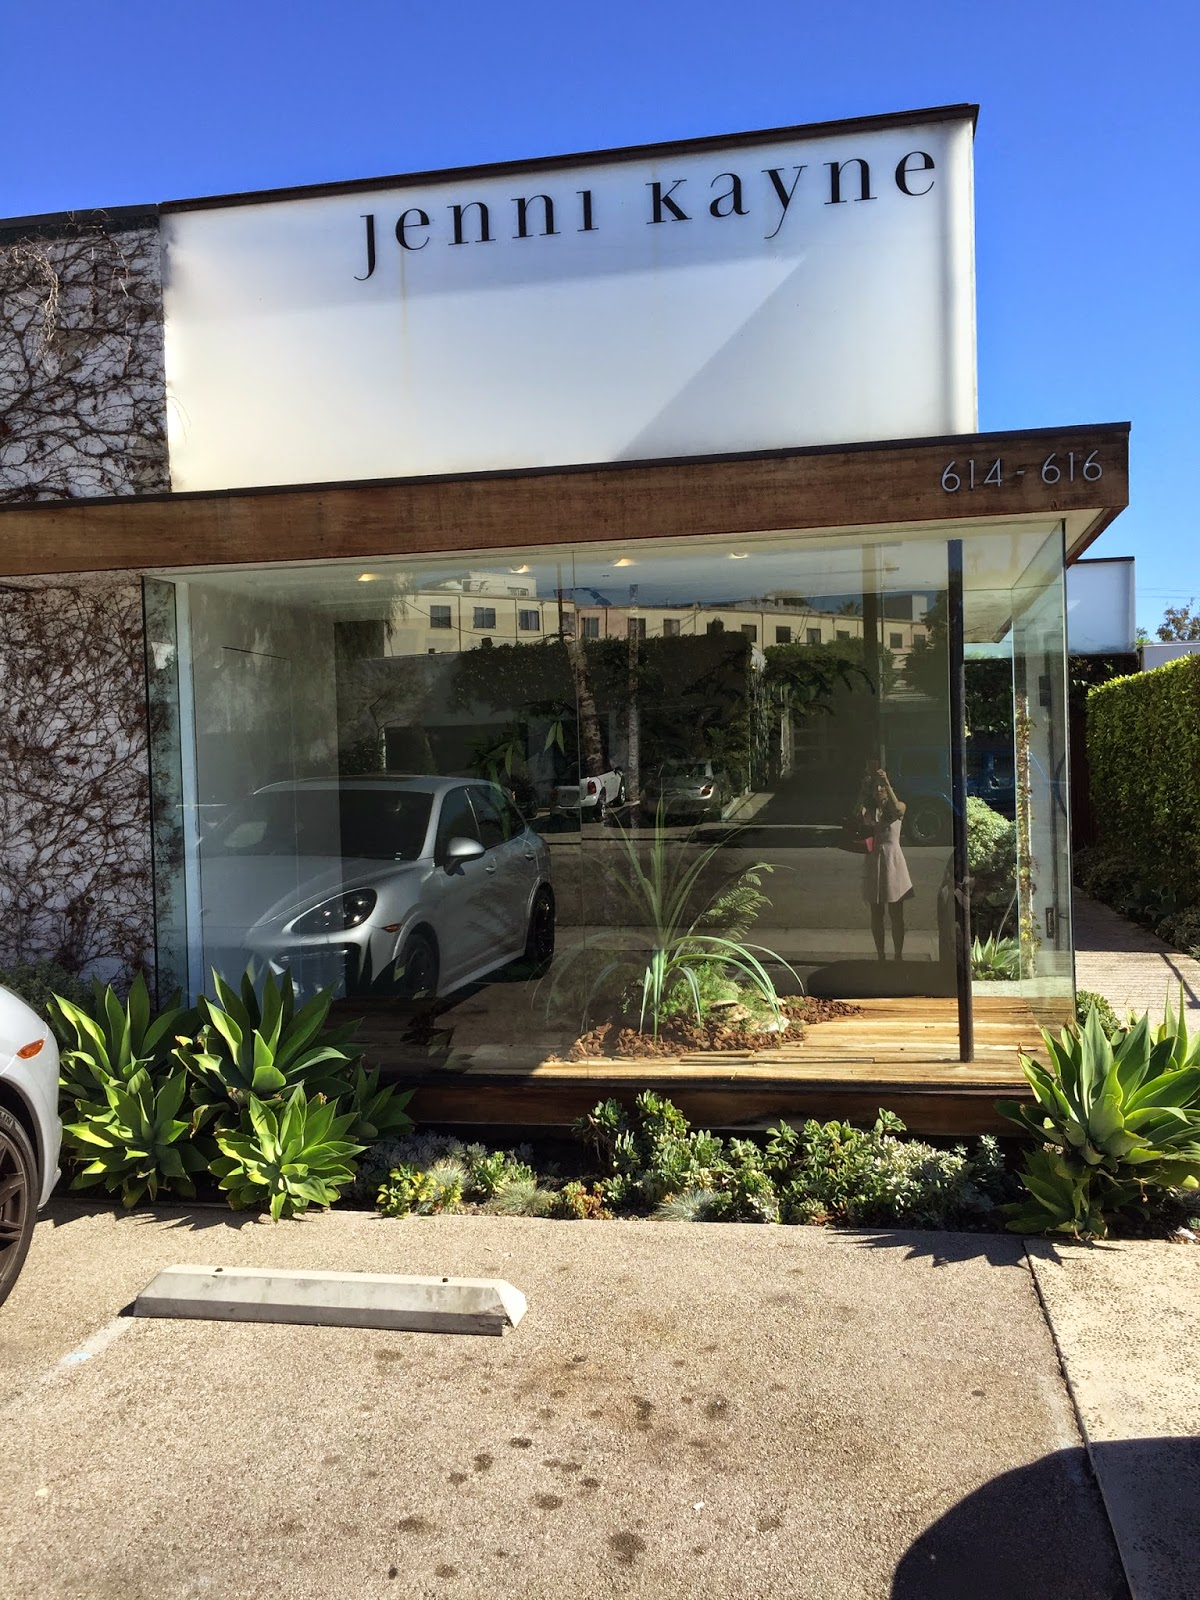 travel jenni kayne store in west hollywood - Jenni Kayne Store